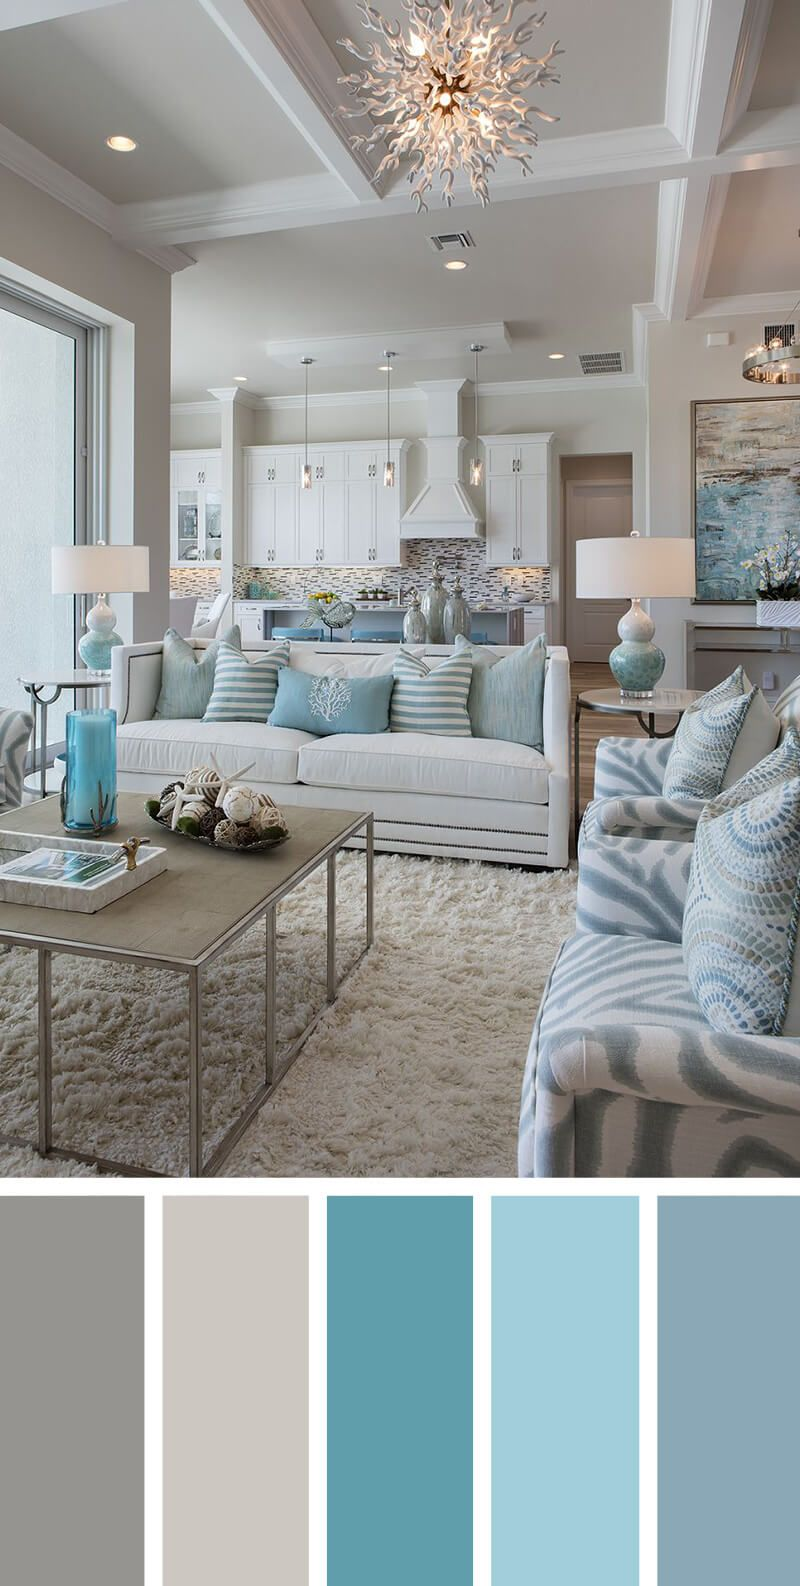 Living Room Schemes A Calming Sea Of Blues Very Comfy And Cozy Shabby Cottage 2